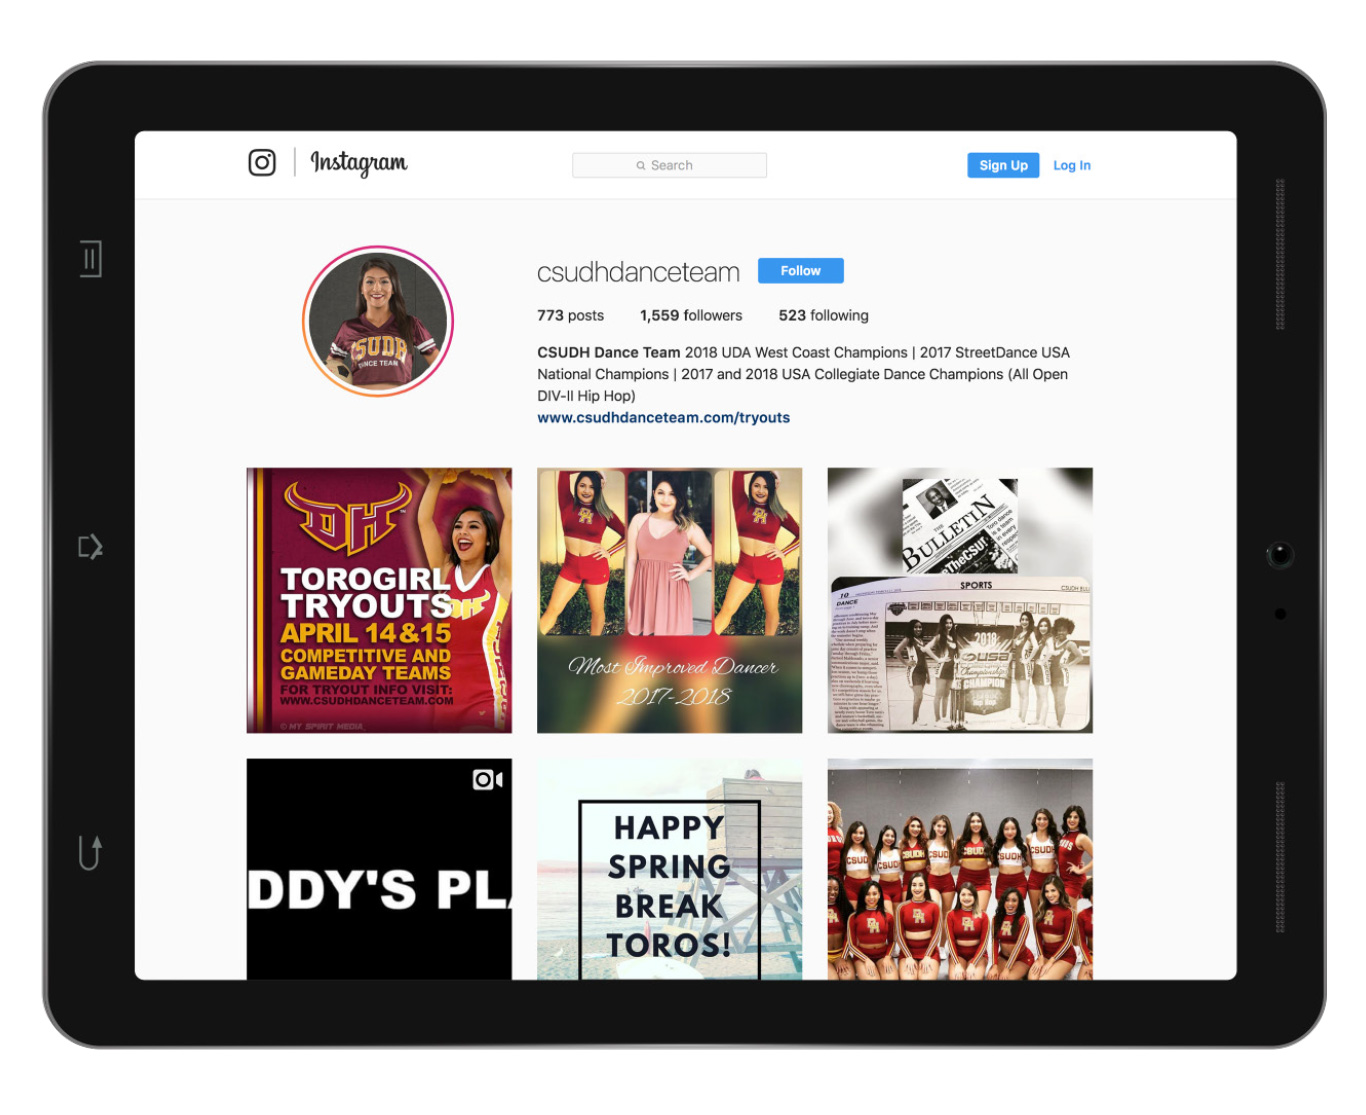 CSUDH dance team Instagram page mockup on ipad